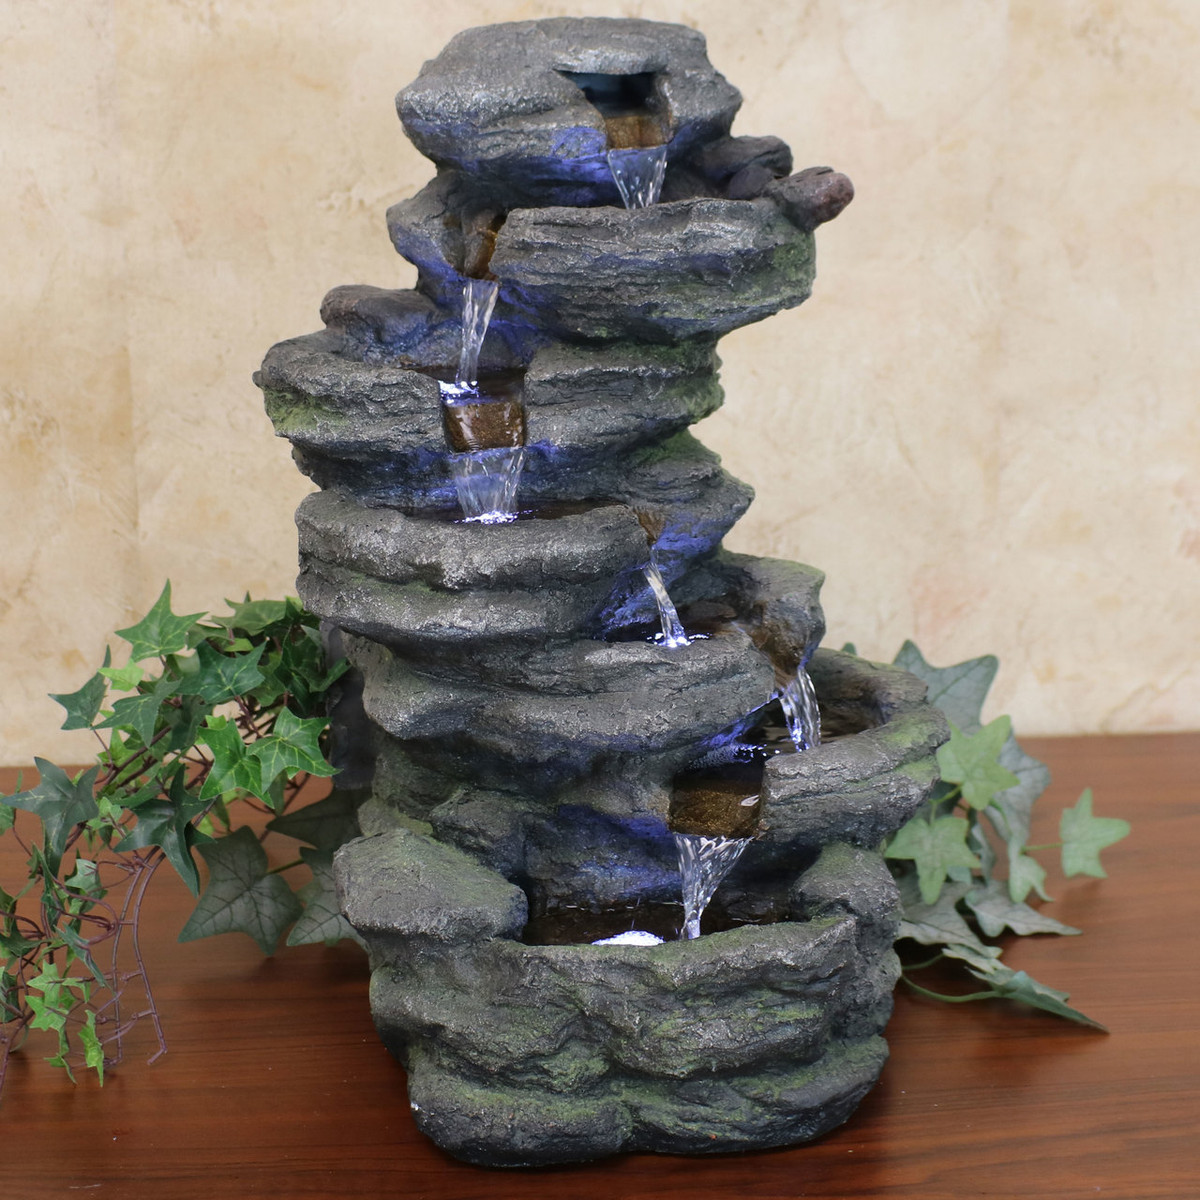 Sunnydaze Stacked Rock Waterfall Outdoor Water Fountain With Led Lights 18 Inch